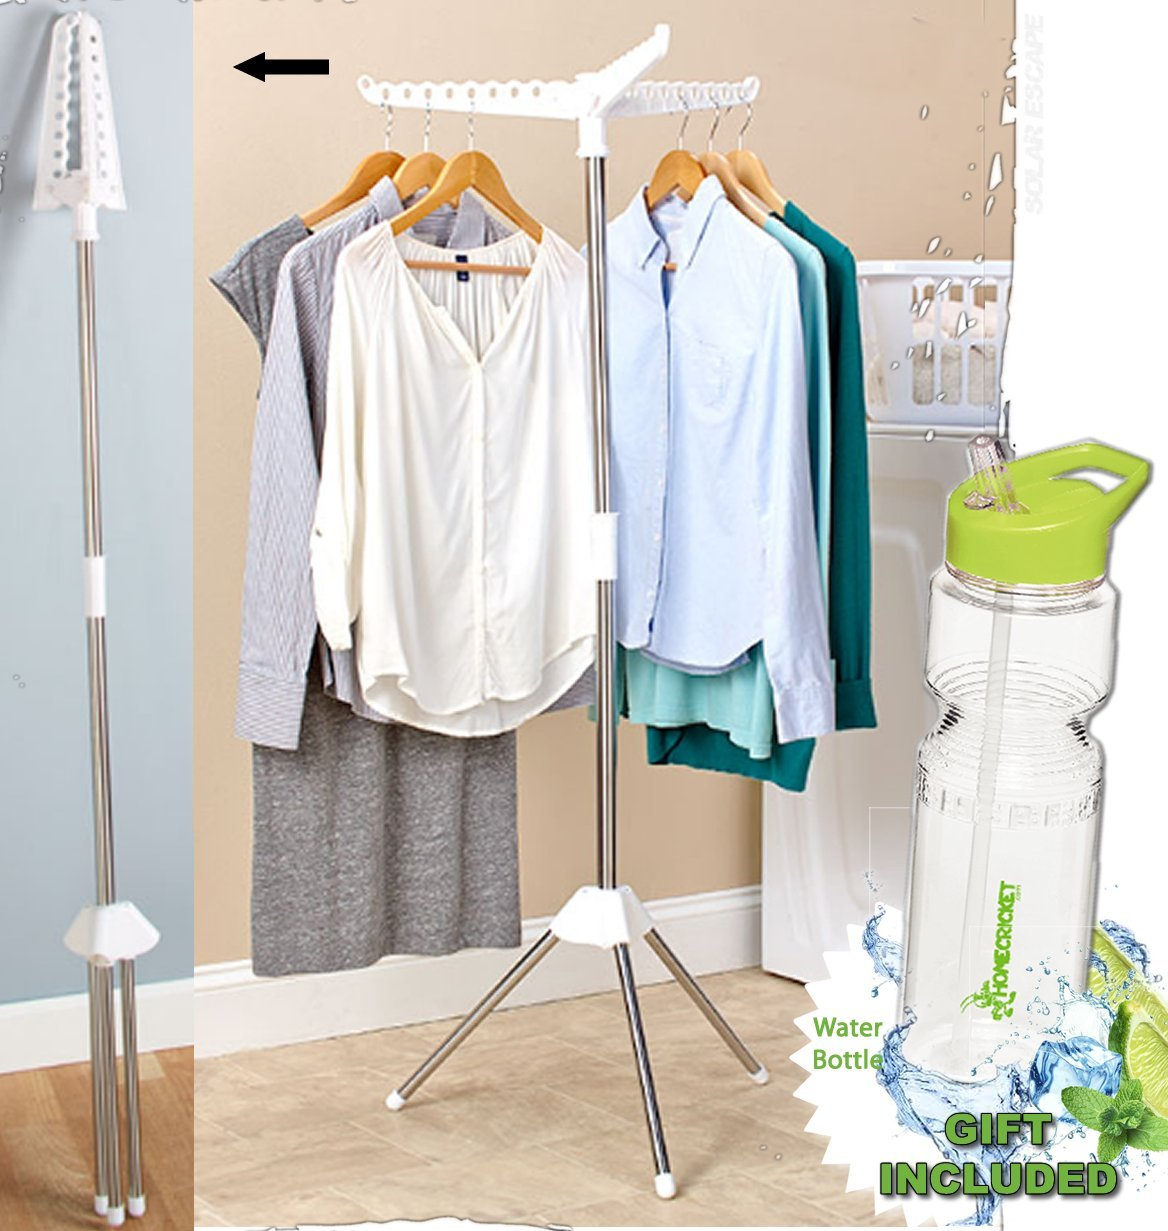 Gift Included- Air-dry Wet Garment Clothes Drying Pole Hang and Dry Rack for Home, Travel or College + FREE Bonus Water Bottle byHomecricket by HomeCricket (Image #3)